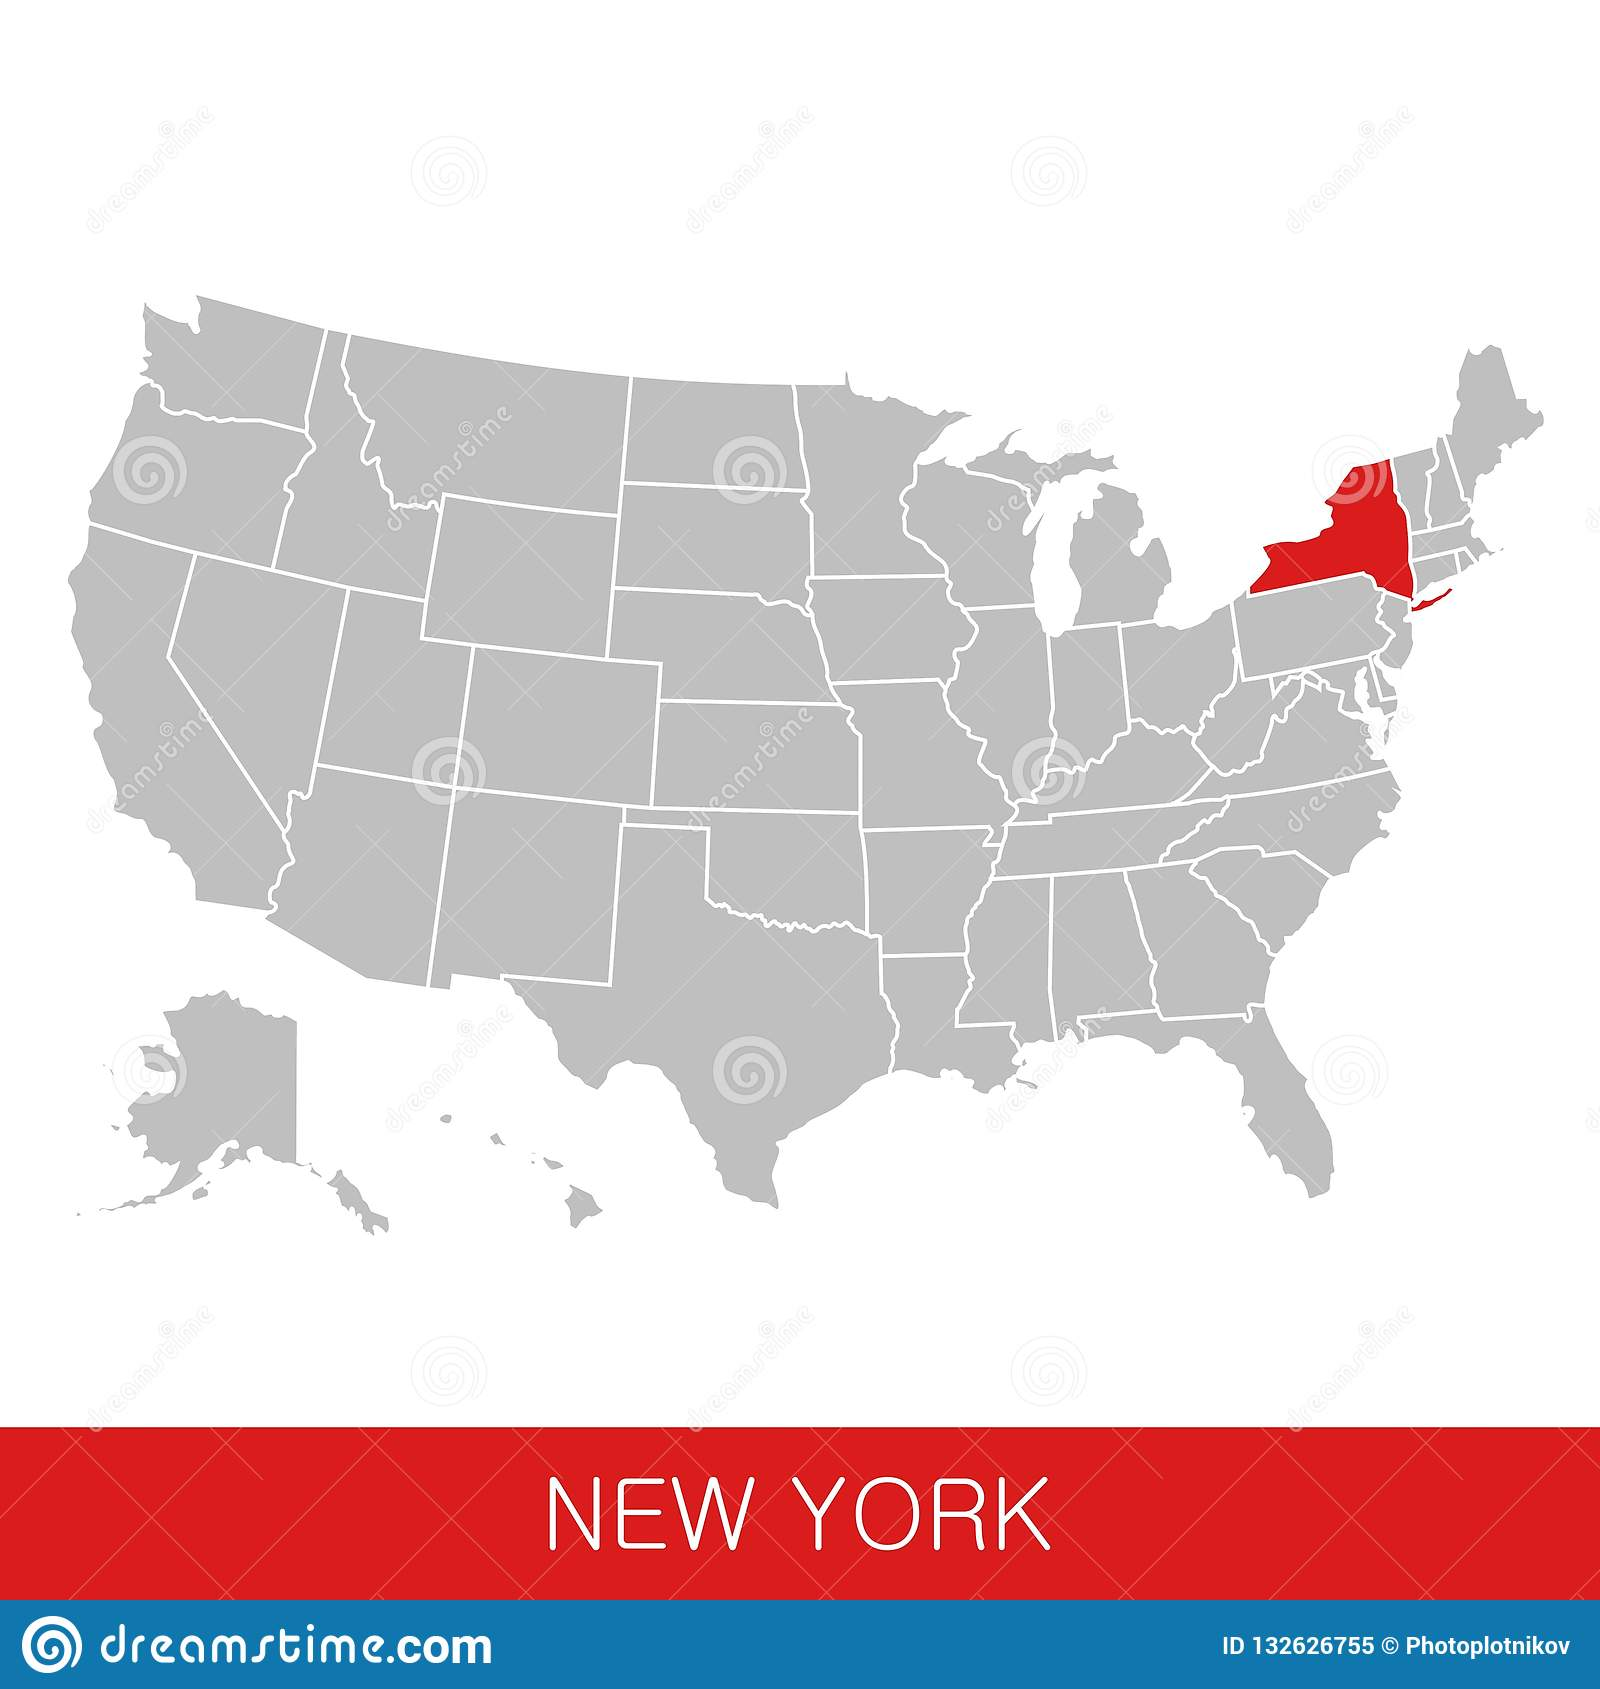 New York On Map Of Us.United States Of America With The State Of New York Selected Map Of